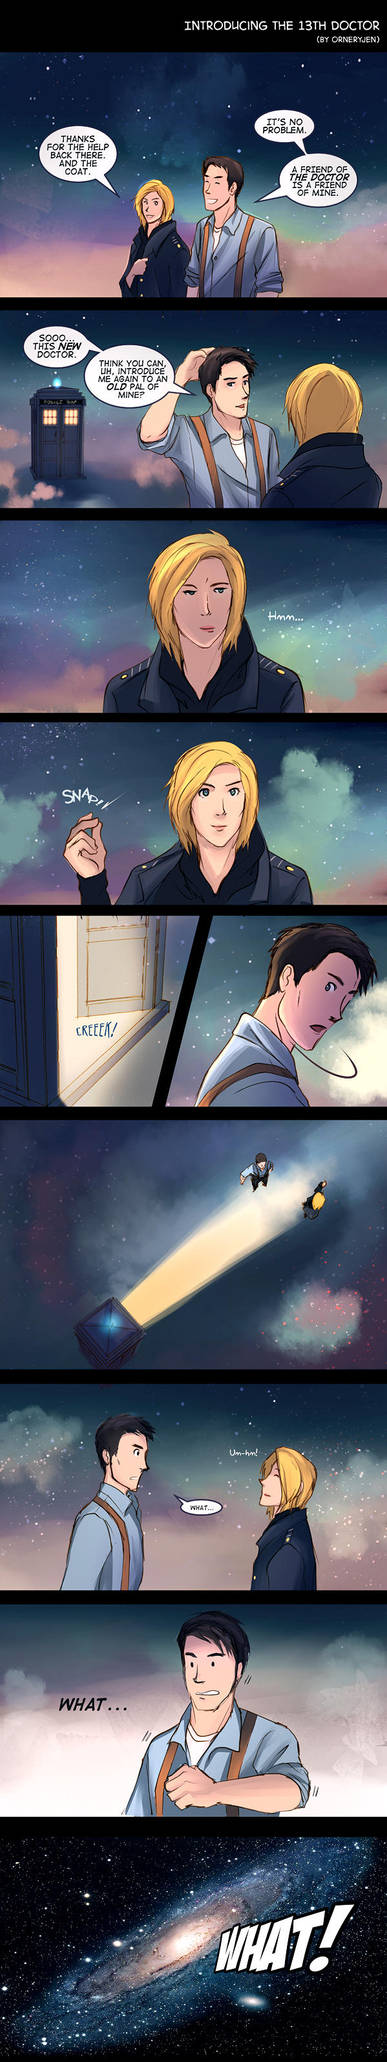 Doctor Who - Introducing... by OrneryJen